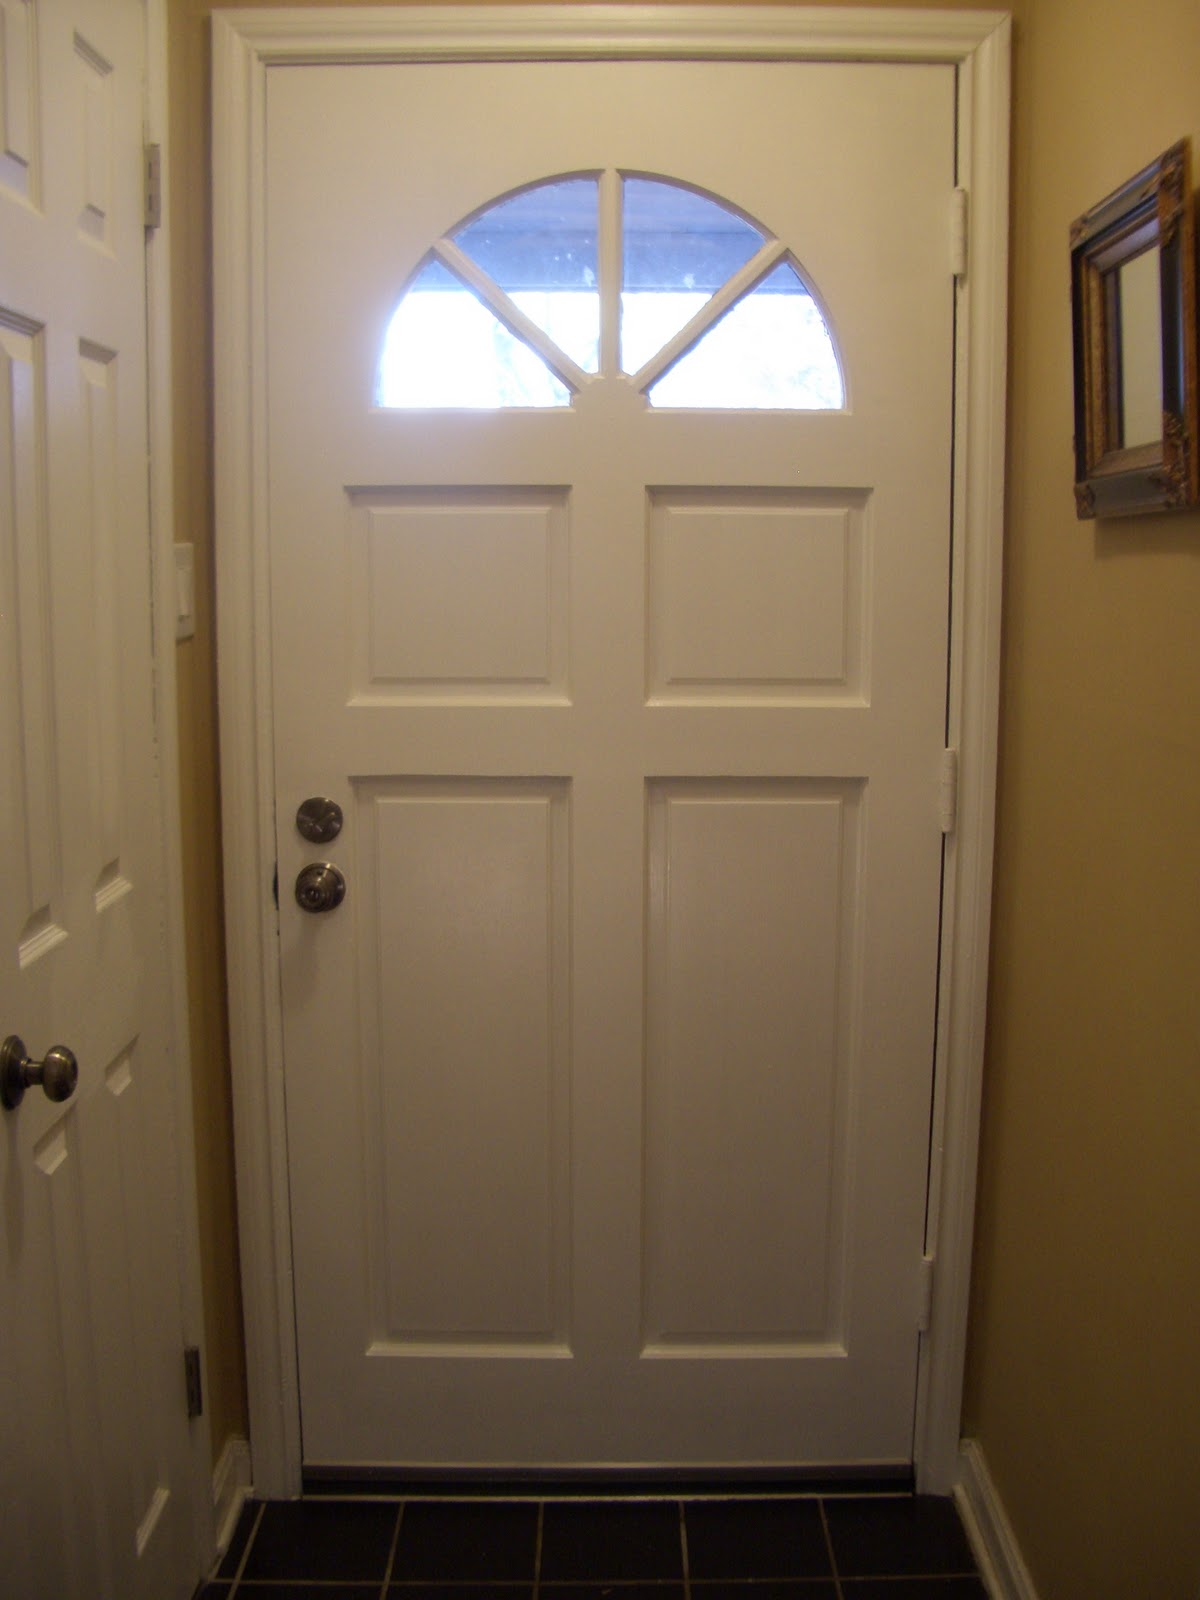 Cool home creations painting front door interior - Cool interior doors for home ...